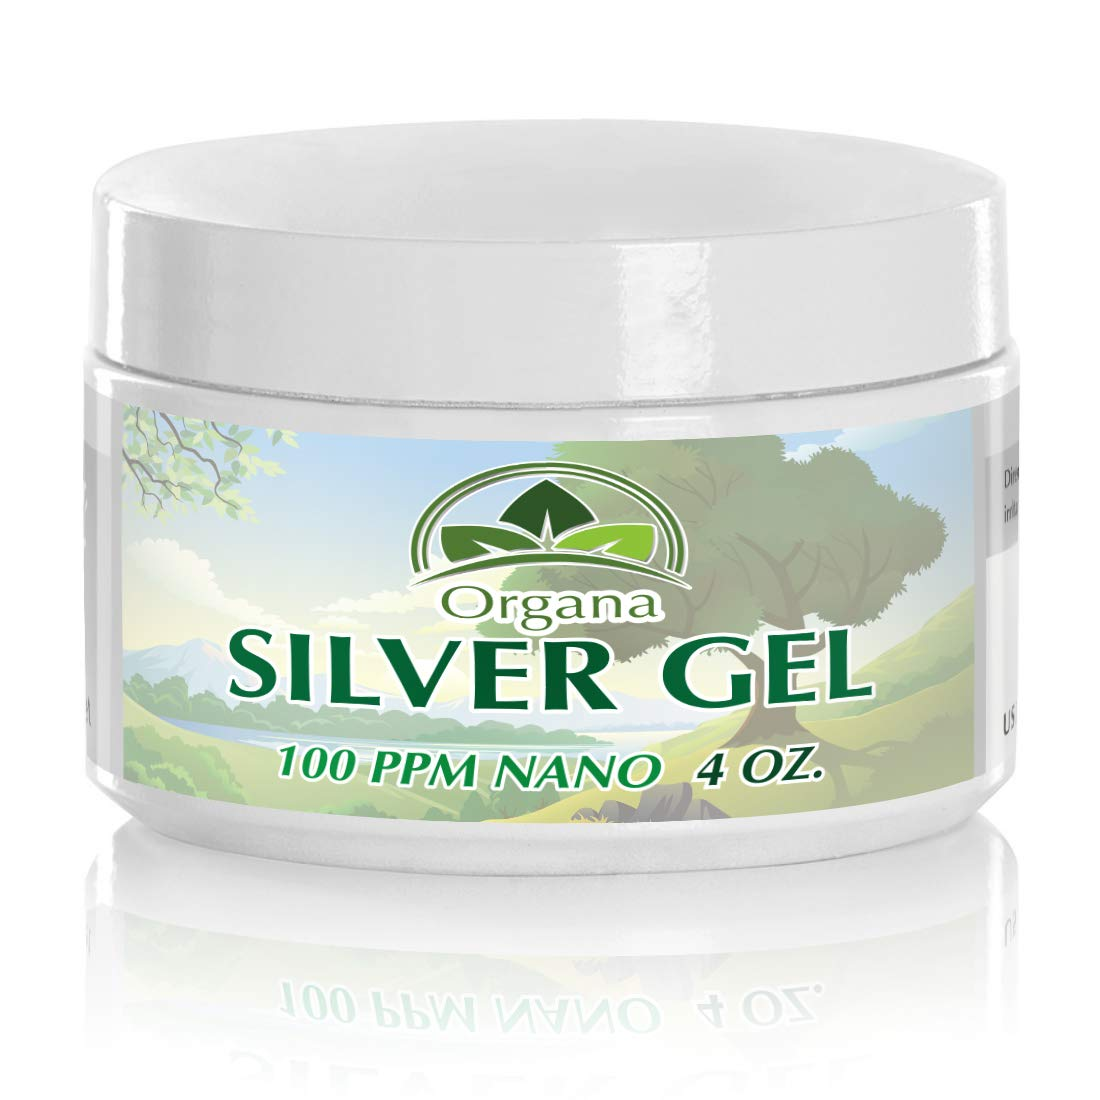 The Best Silver Gel - 100 PPM - Colloidal Silver Gel (4oz)